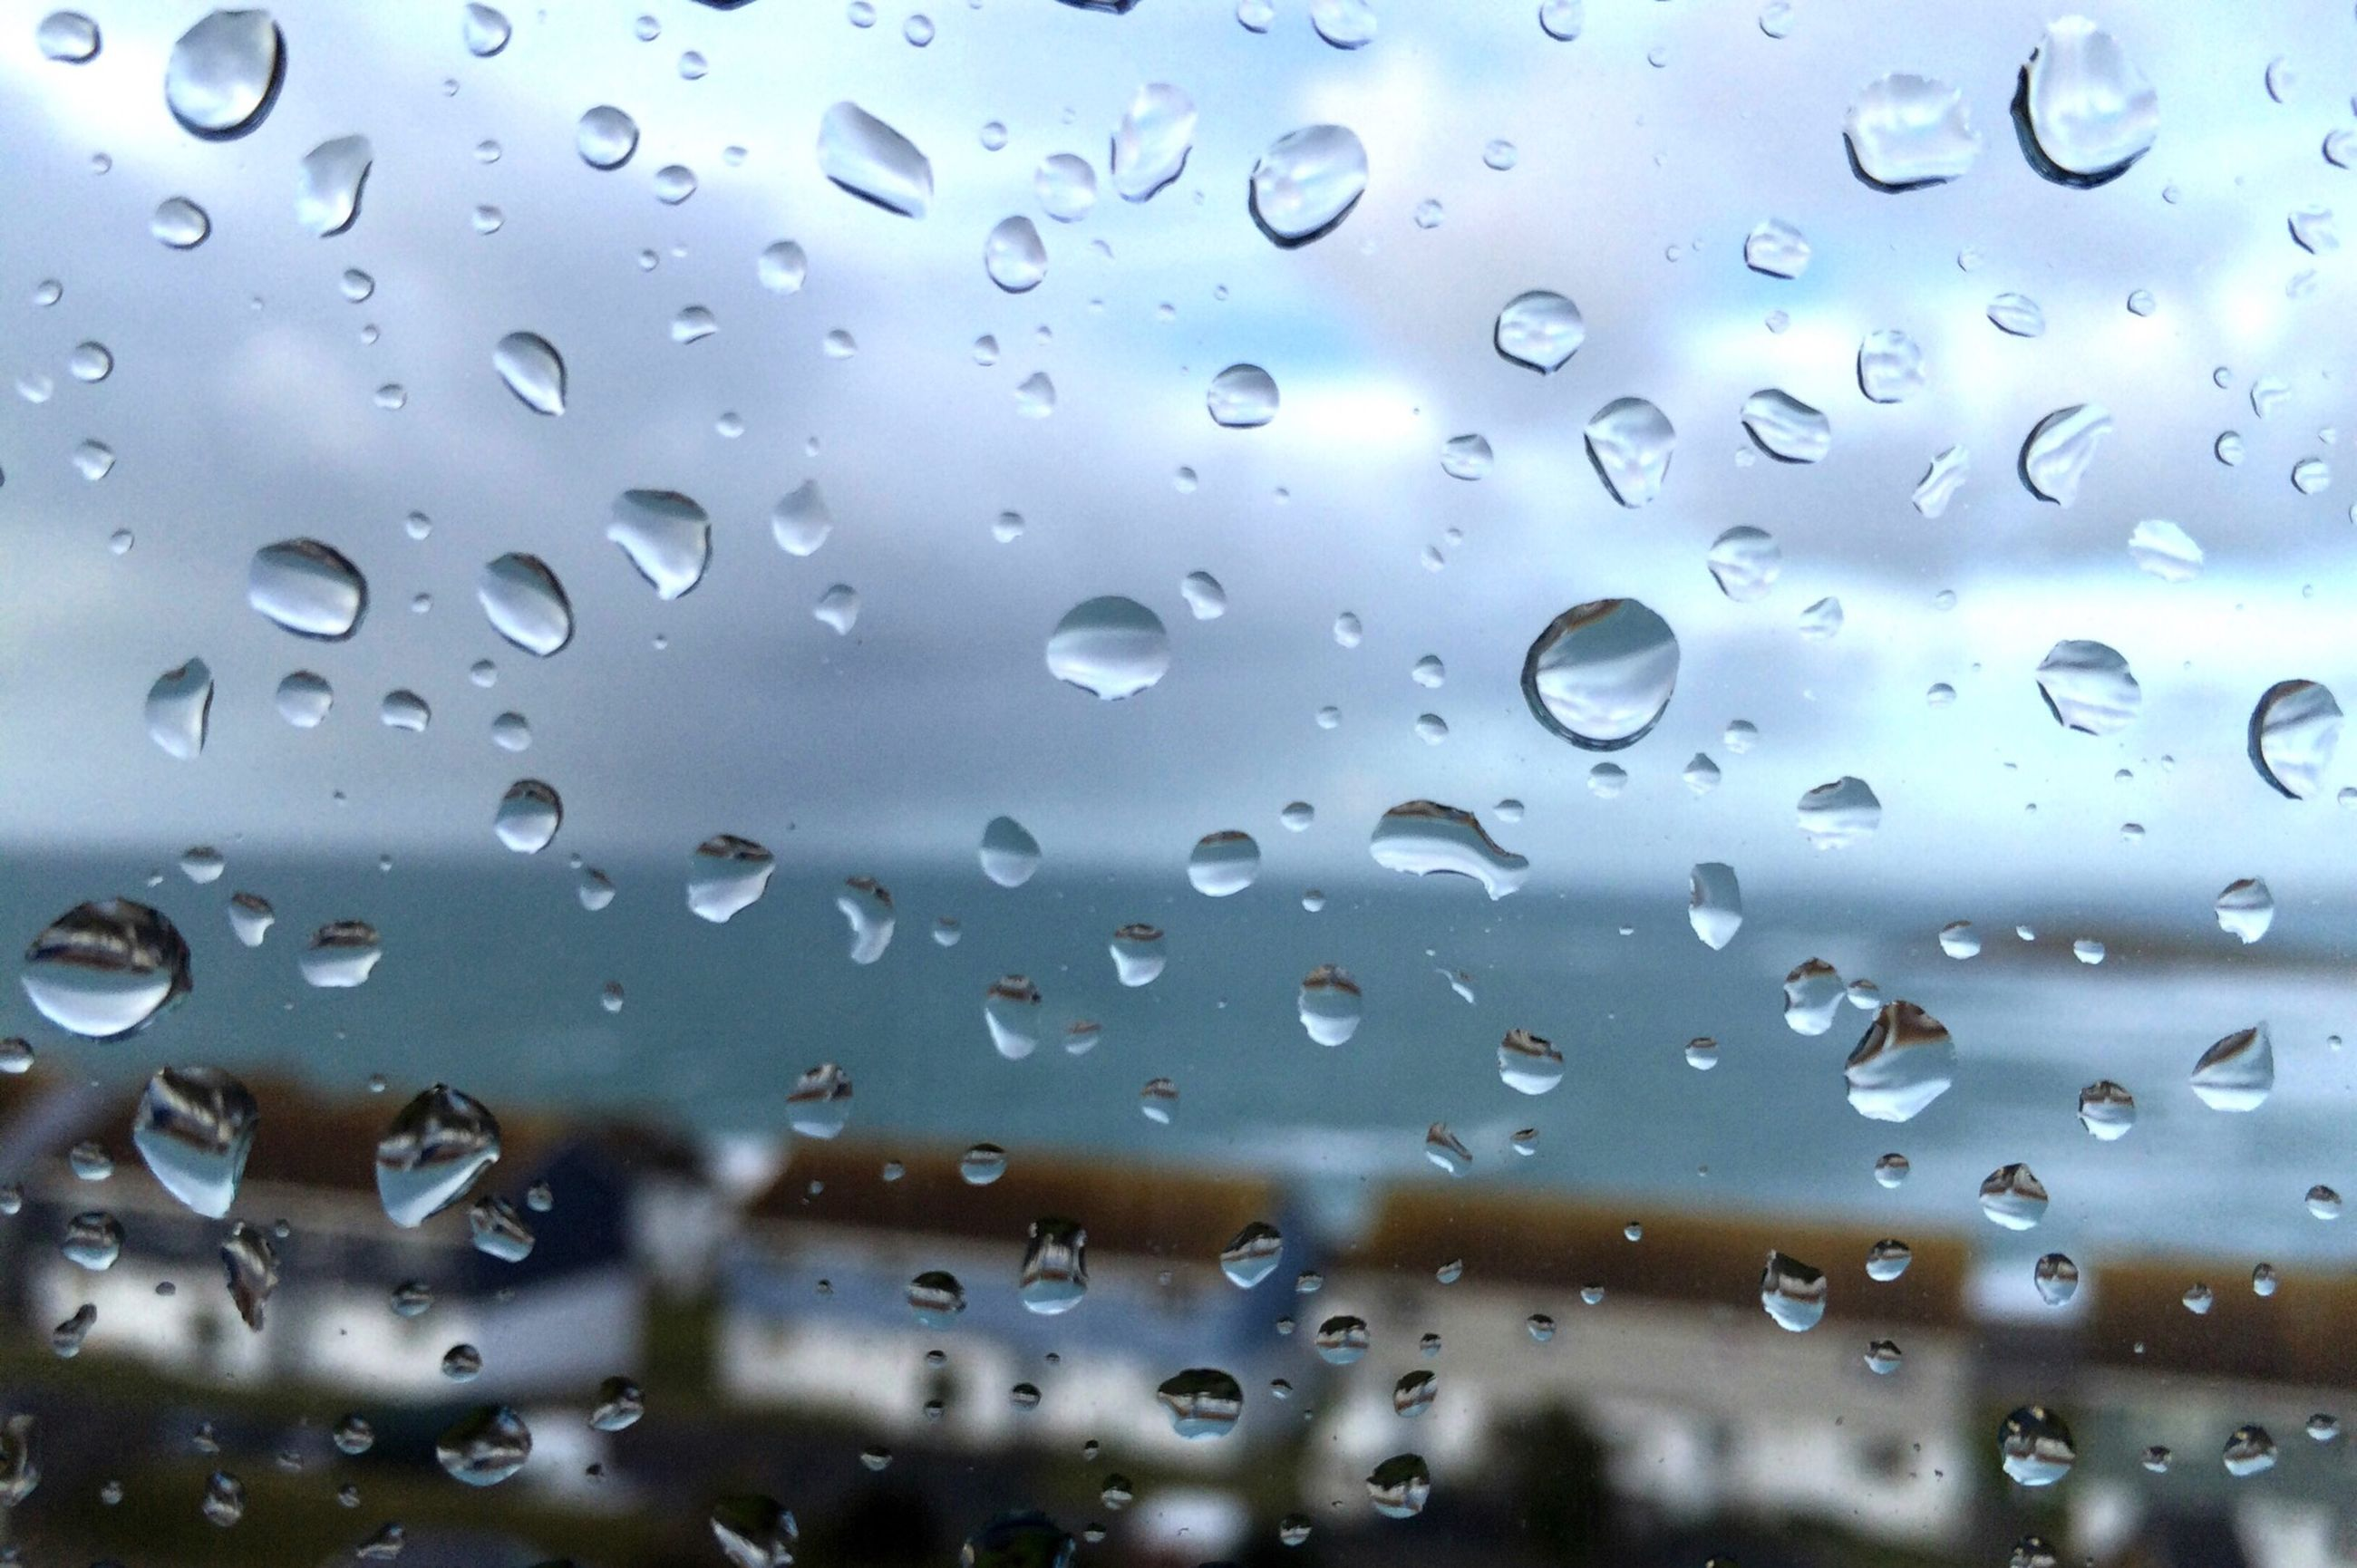 drop, wet, water, window, rain, transparent, raindrop, glass - material, indoors, weather, focus on foreground, backgrounds, full frame, season, close-up, sky, glass, droplet, water drop, nature